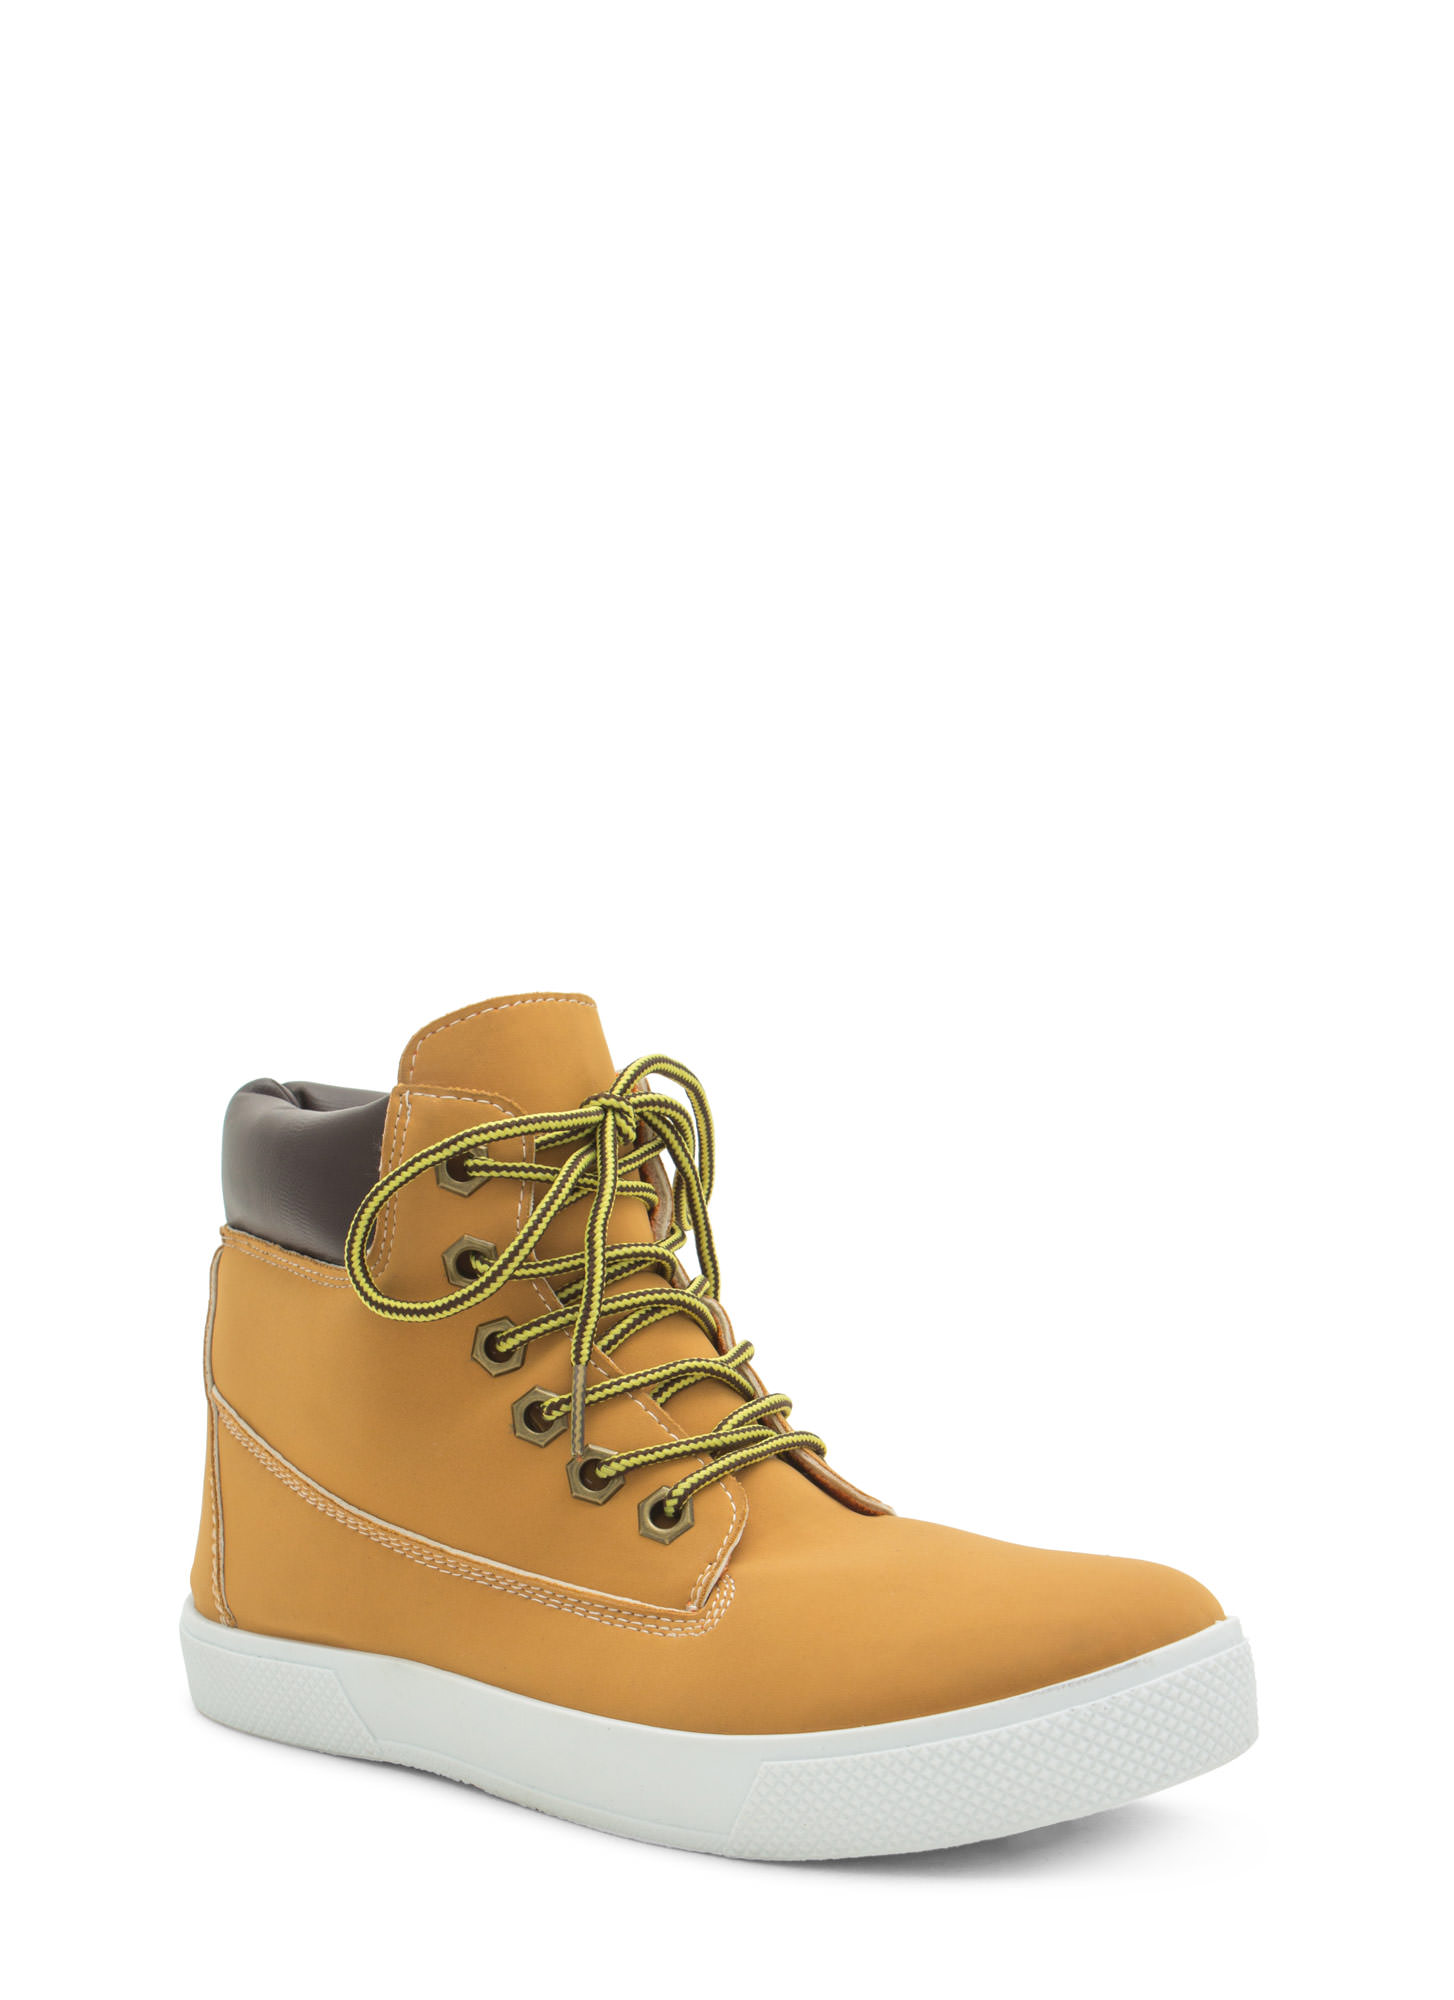 Faux Nubuck High Top Sneakers TAN